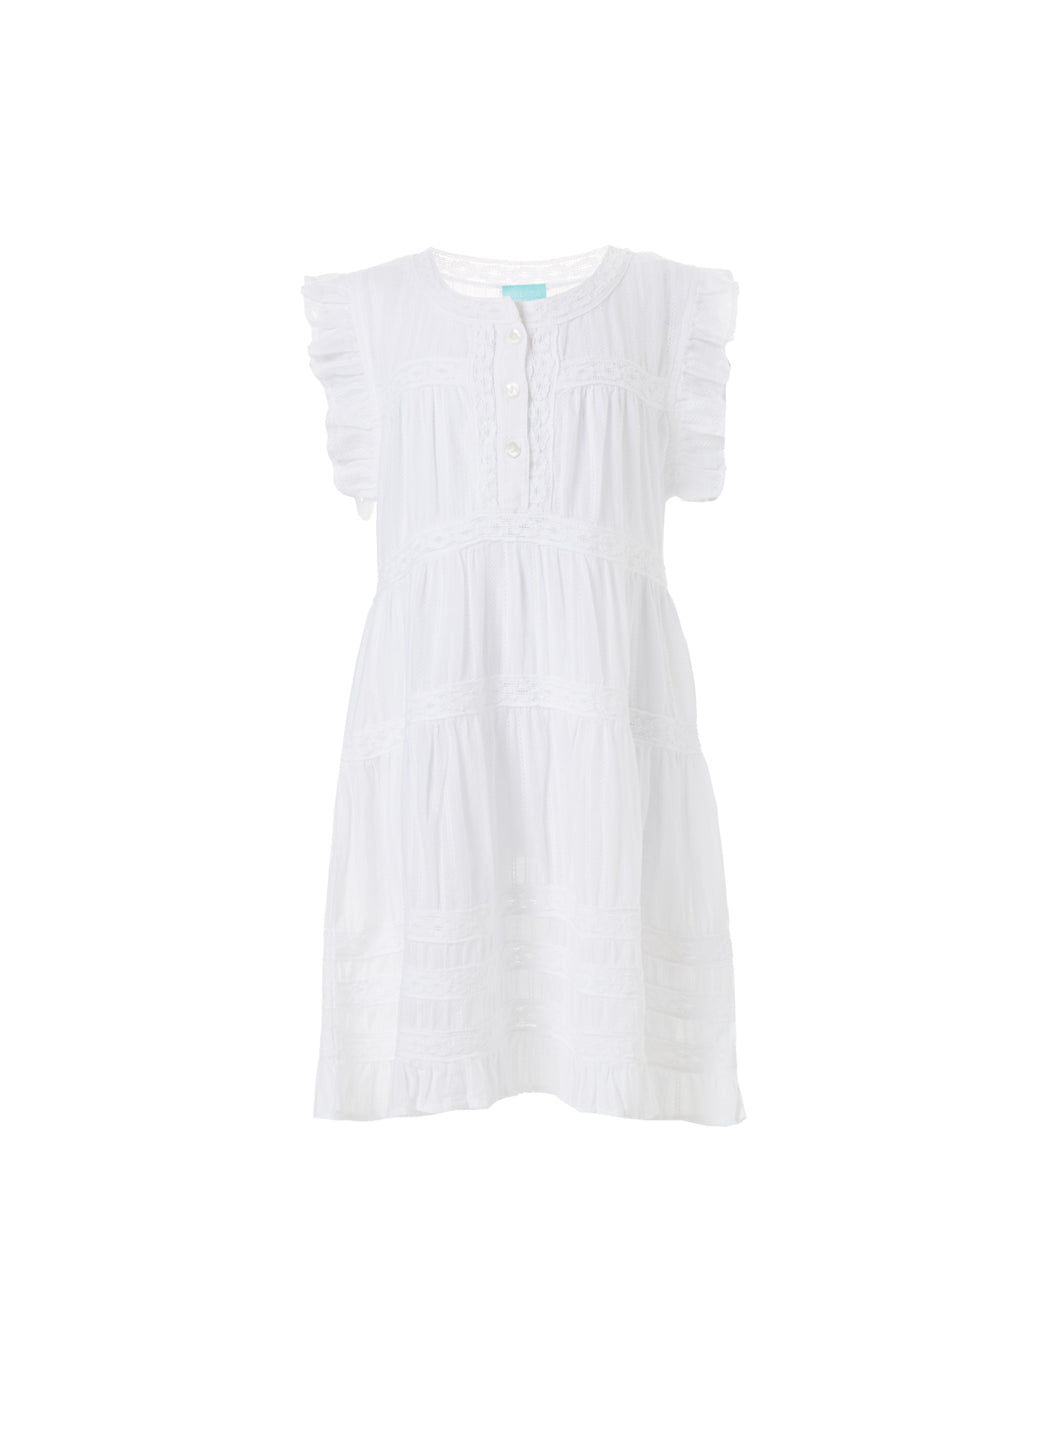 Baby Rebekah White Smock Dress - Melissa Odabash Kids Beach Dresses